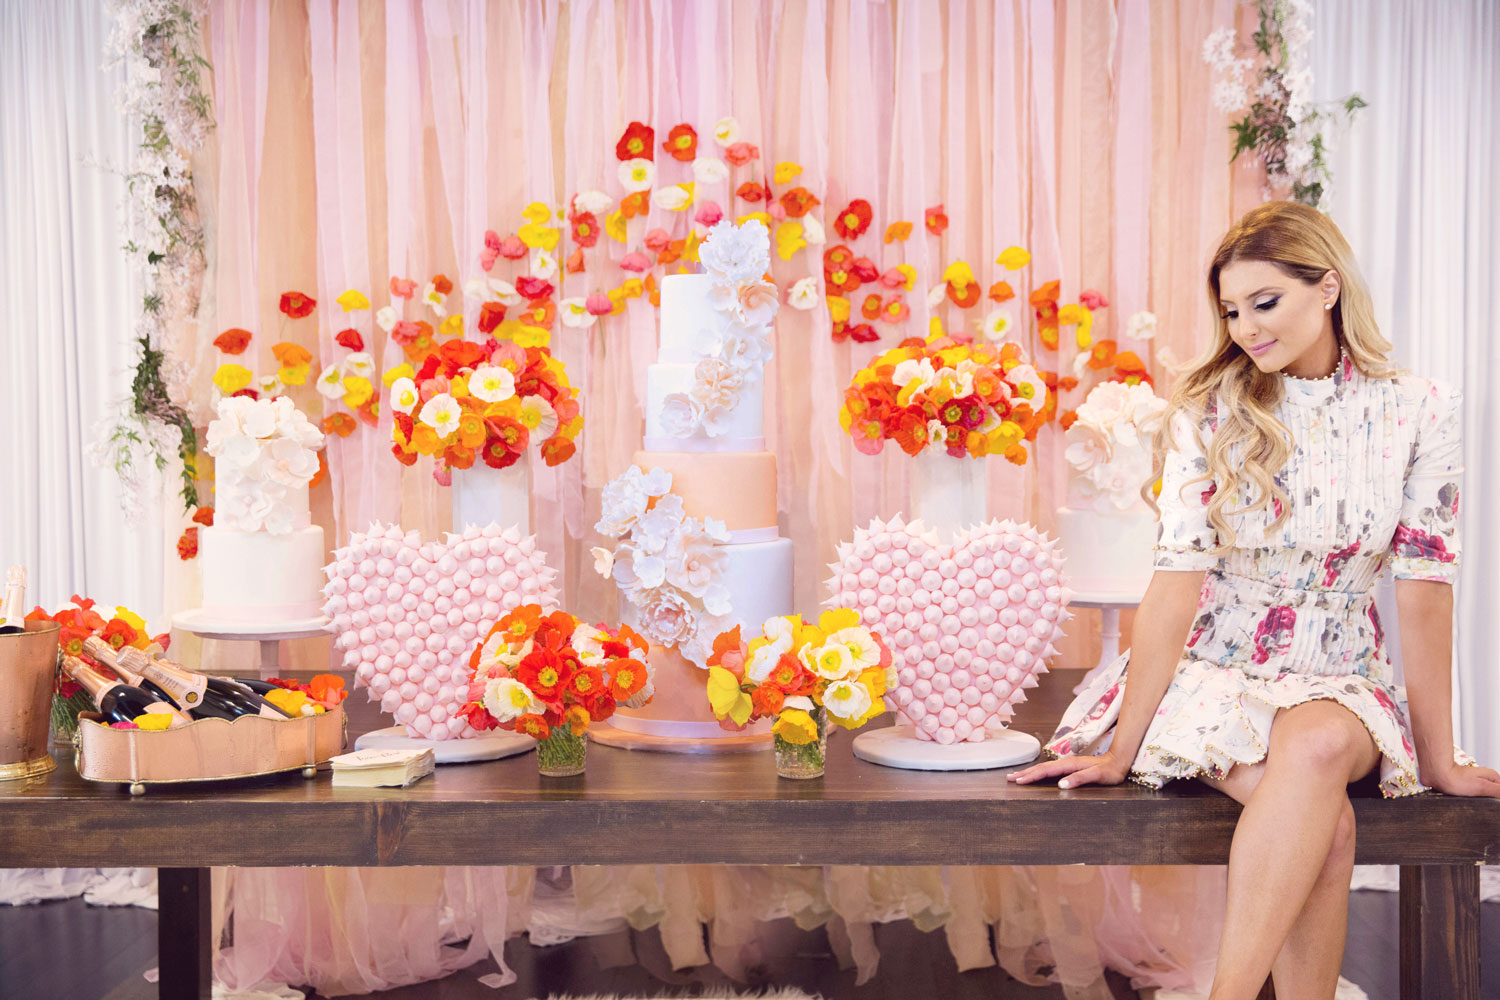 bridal luncheon, who hosts a bridal luncheon, what is a bridal luncheon